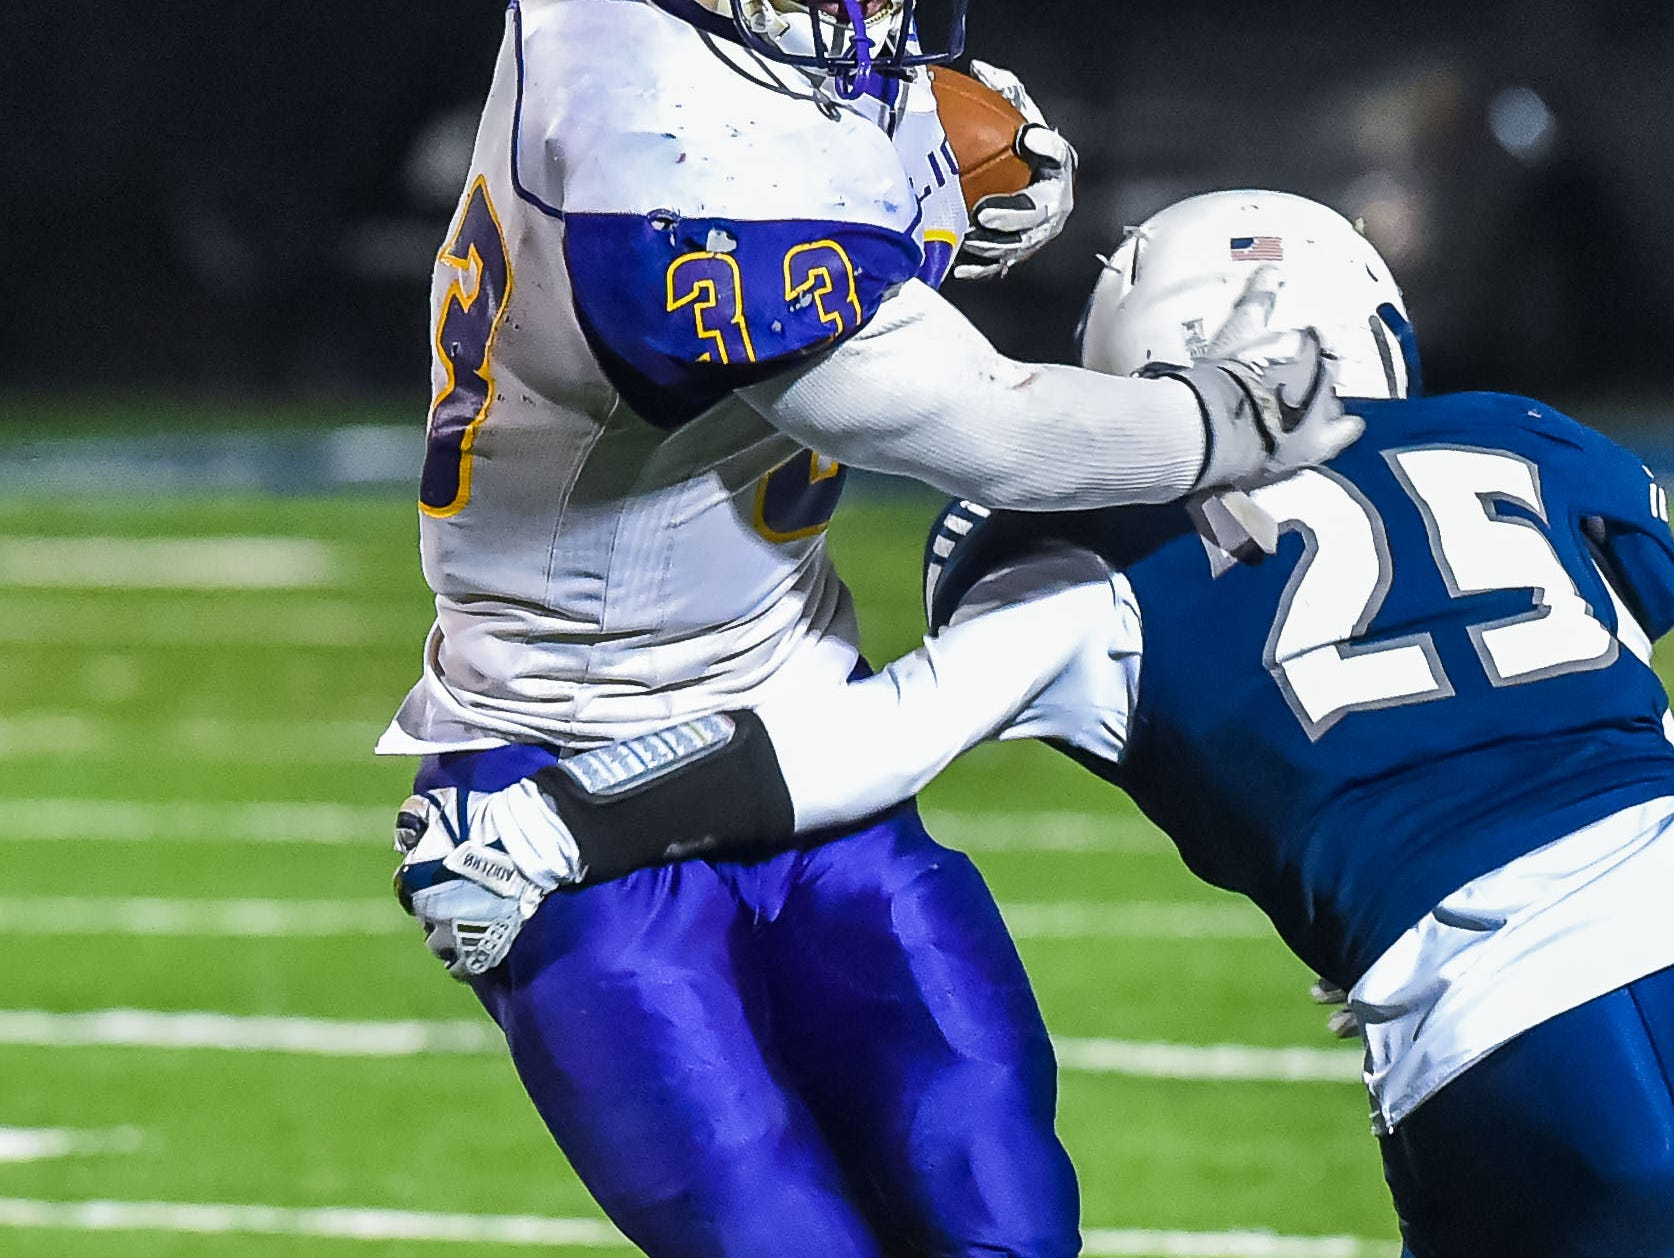 Union Christian's Nick Evans (33) breaks a tackle against Tunica during the MAIS Class A Championship Football game held at Jackson Academy in Jackson, MS, Thursday November 15, 2018.(Bob Smith-For The Clarion Ledger)